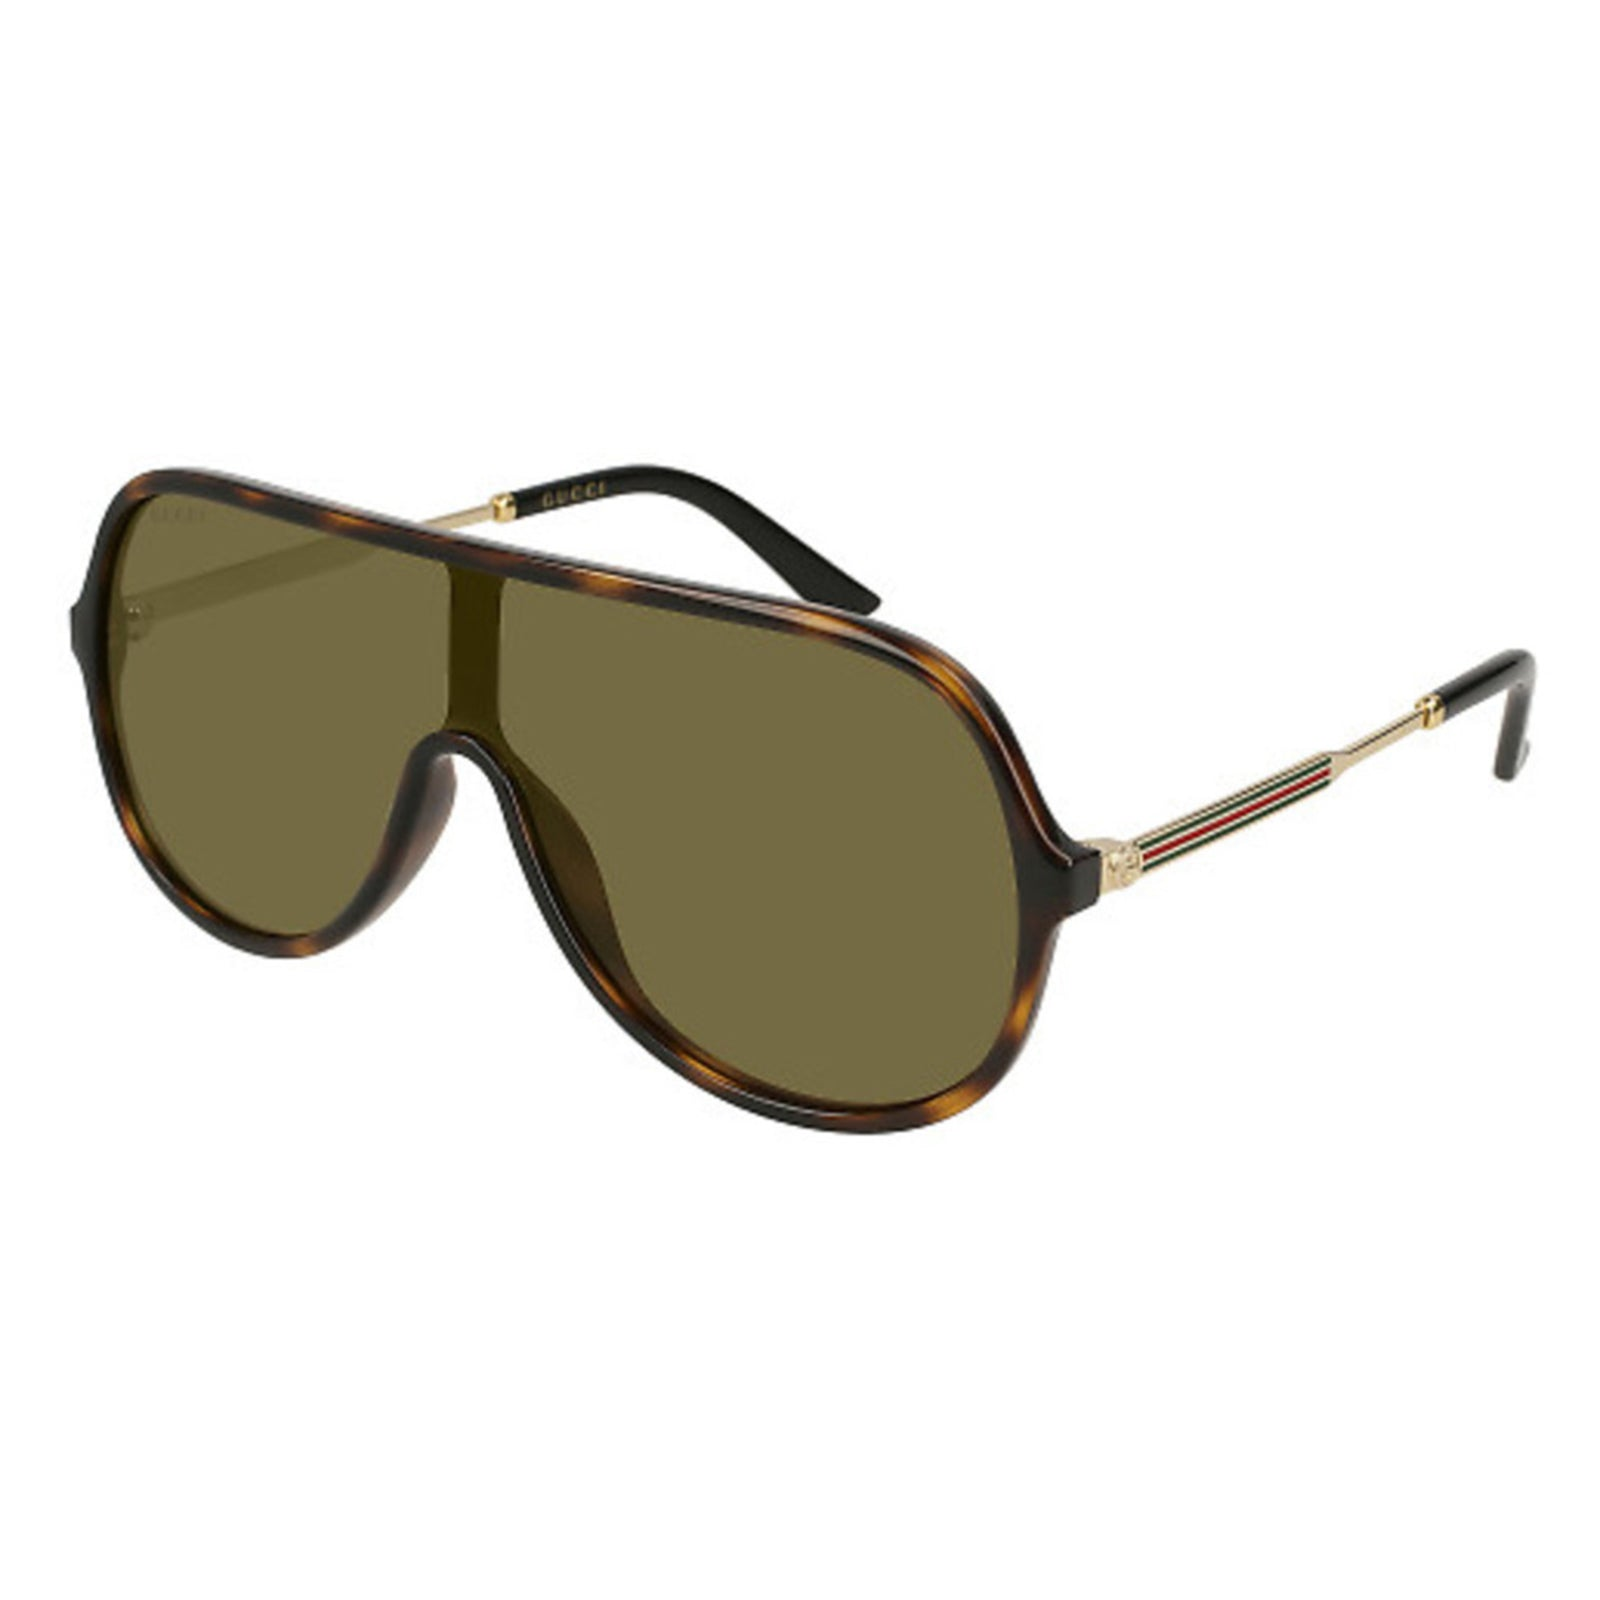 Gucci Women's Sunglasses GG0199-003